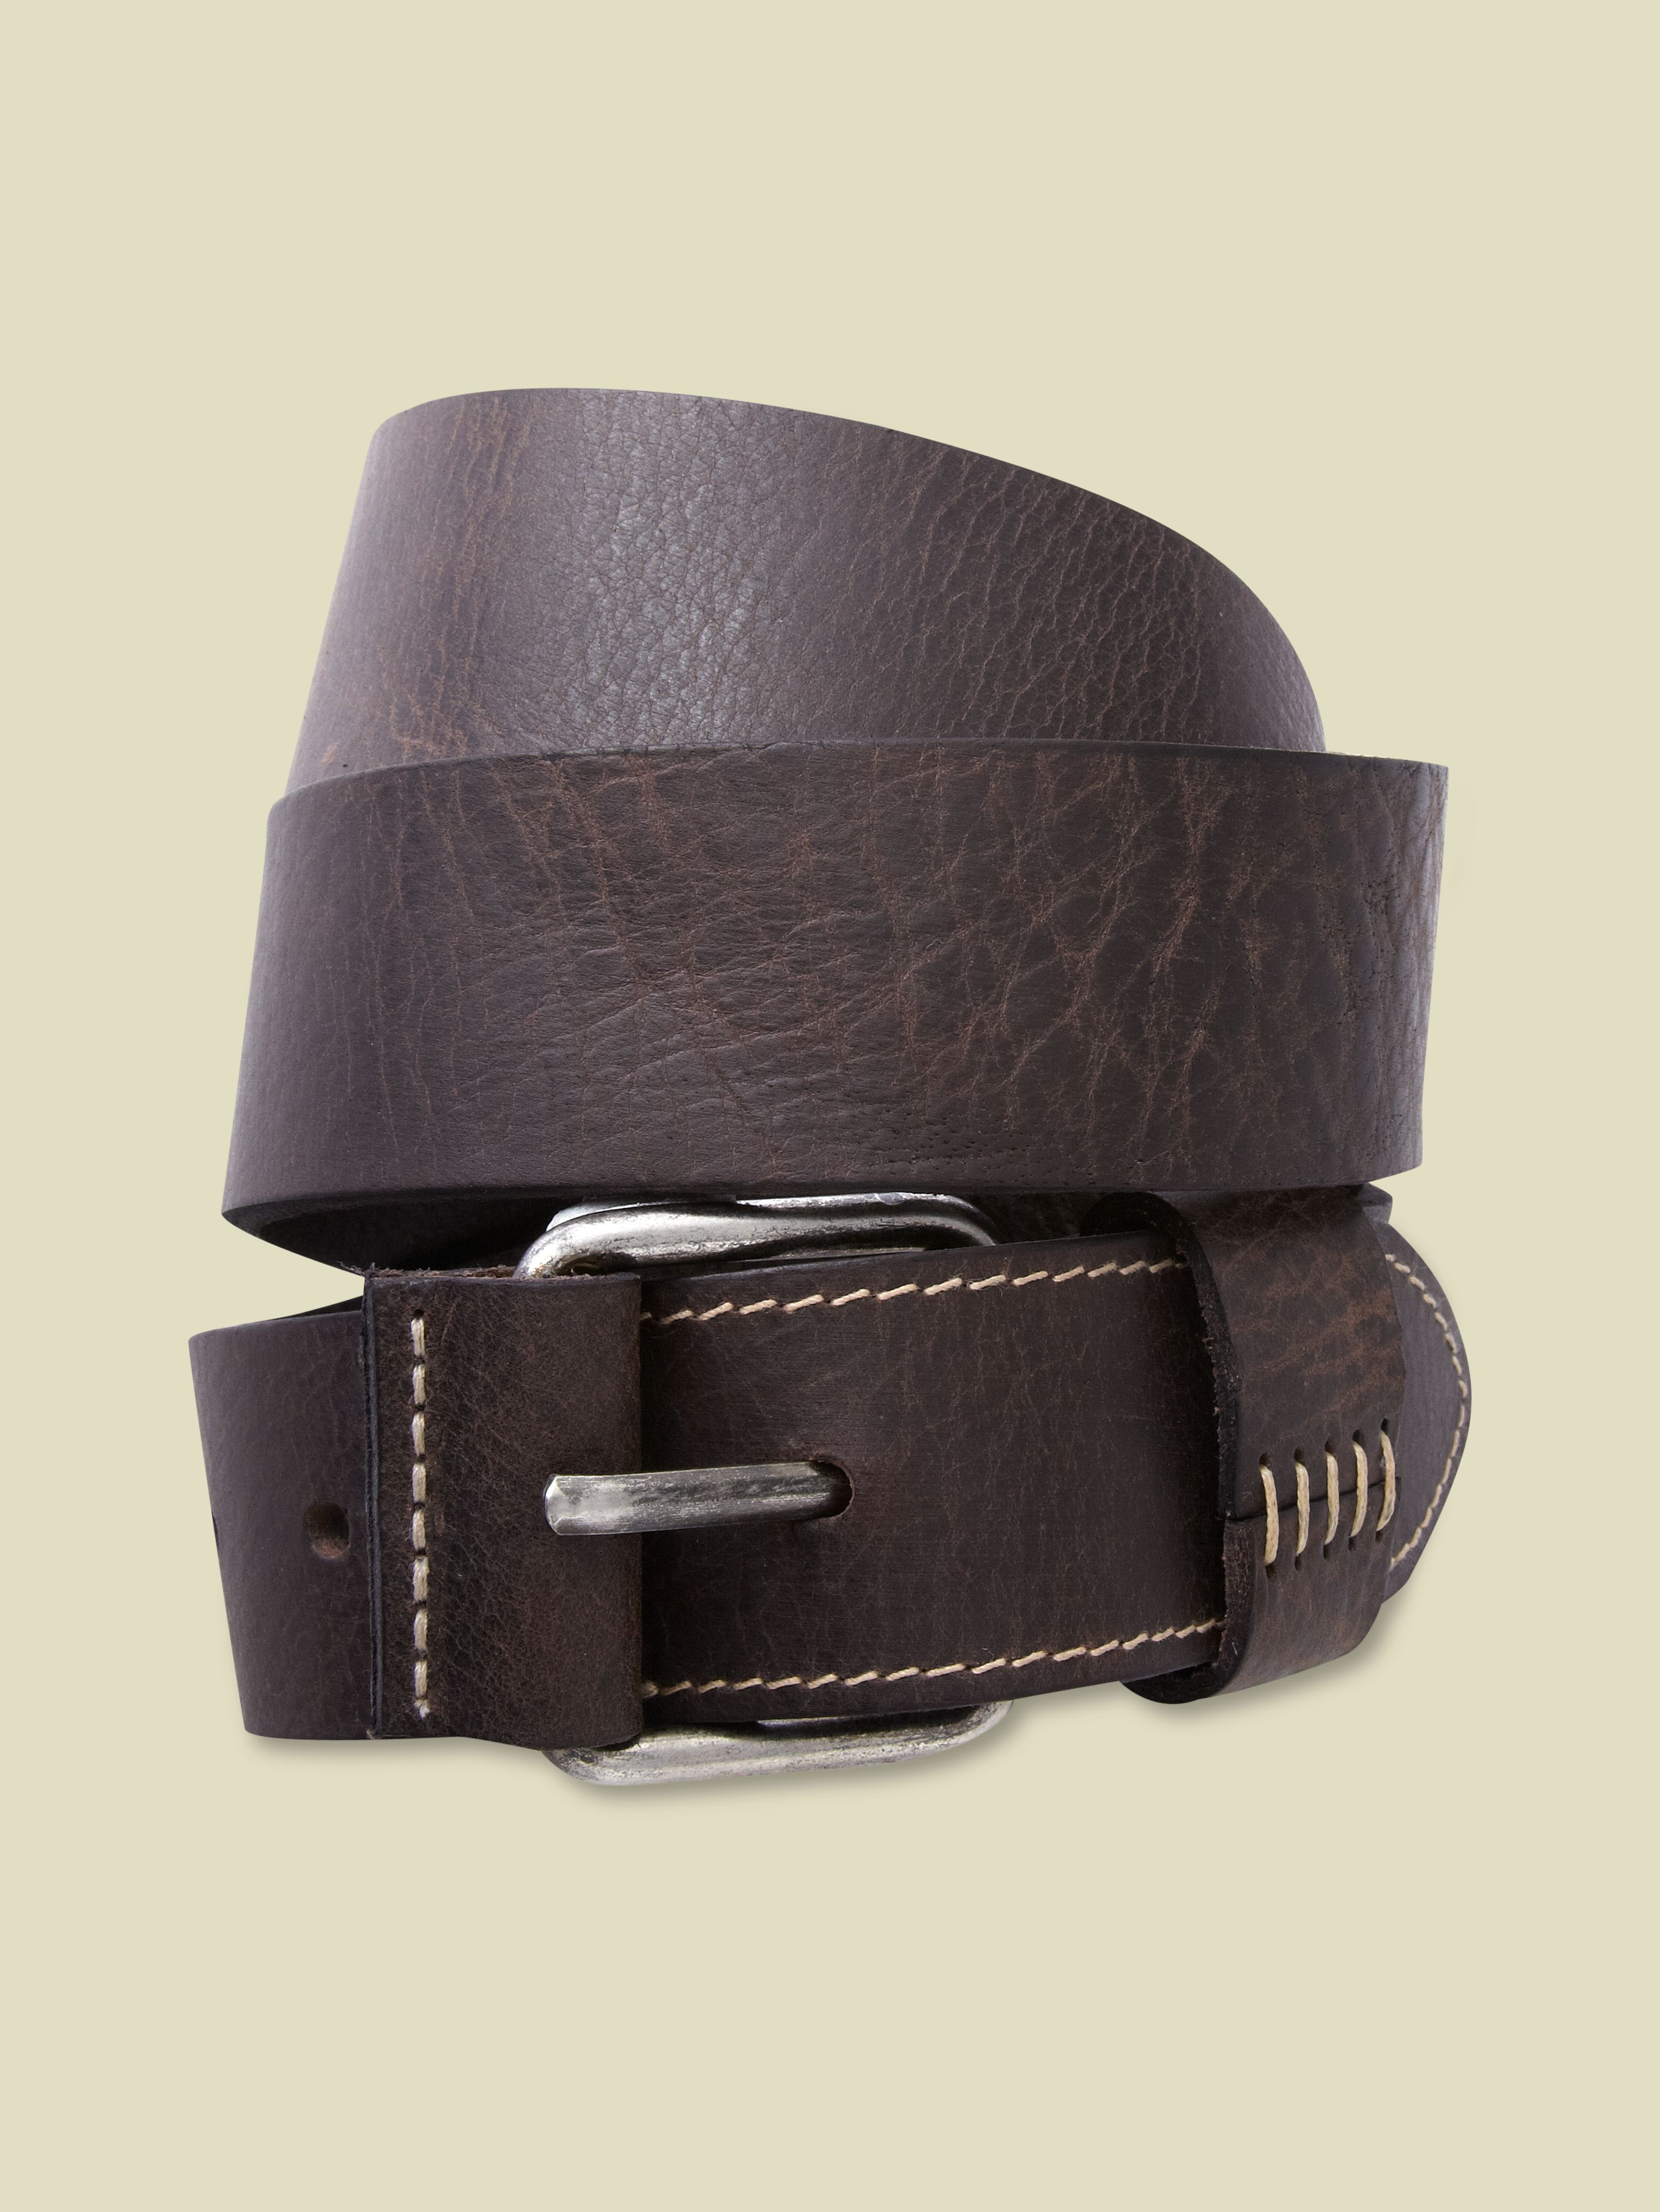 Rope stitch belt